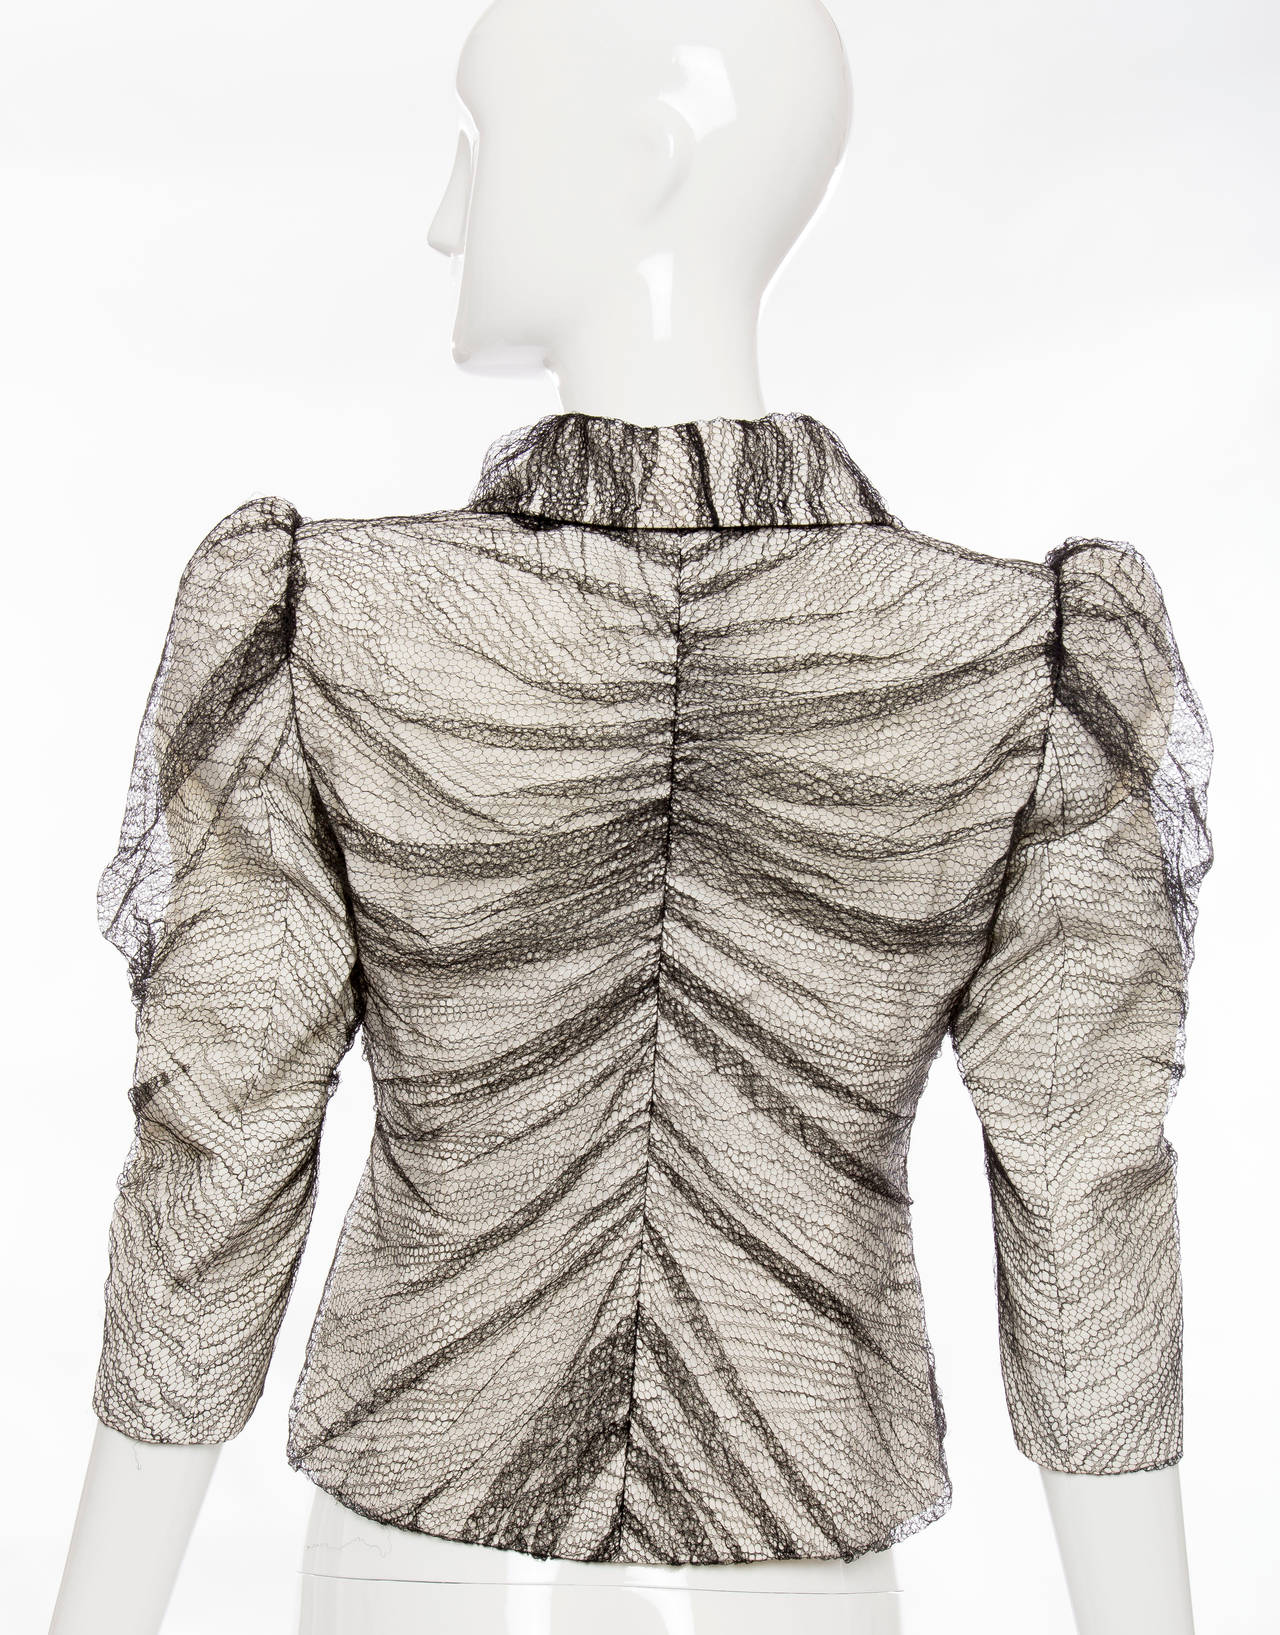 Gray Alexander McQueen Sarabande Collection Tulle Overlay Jacket, Spring 2007 For Sale